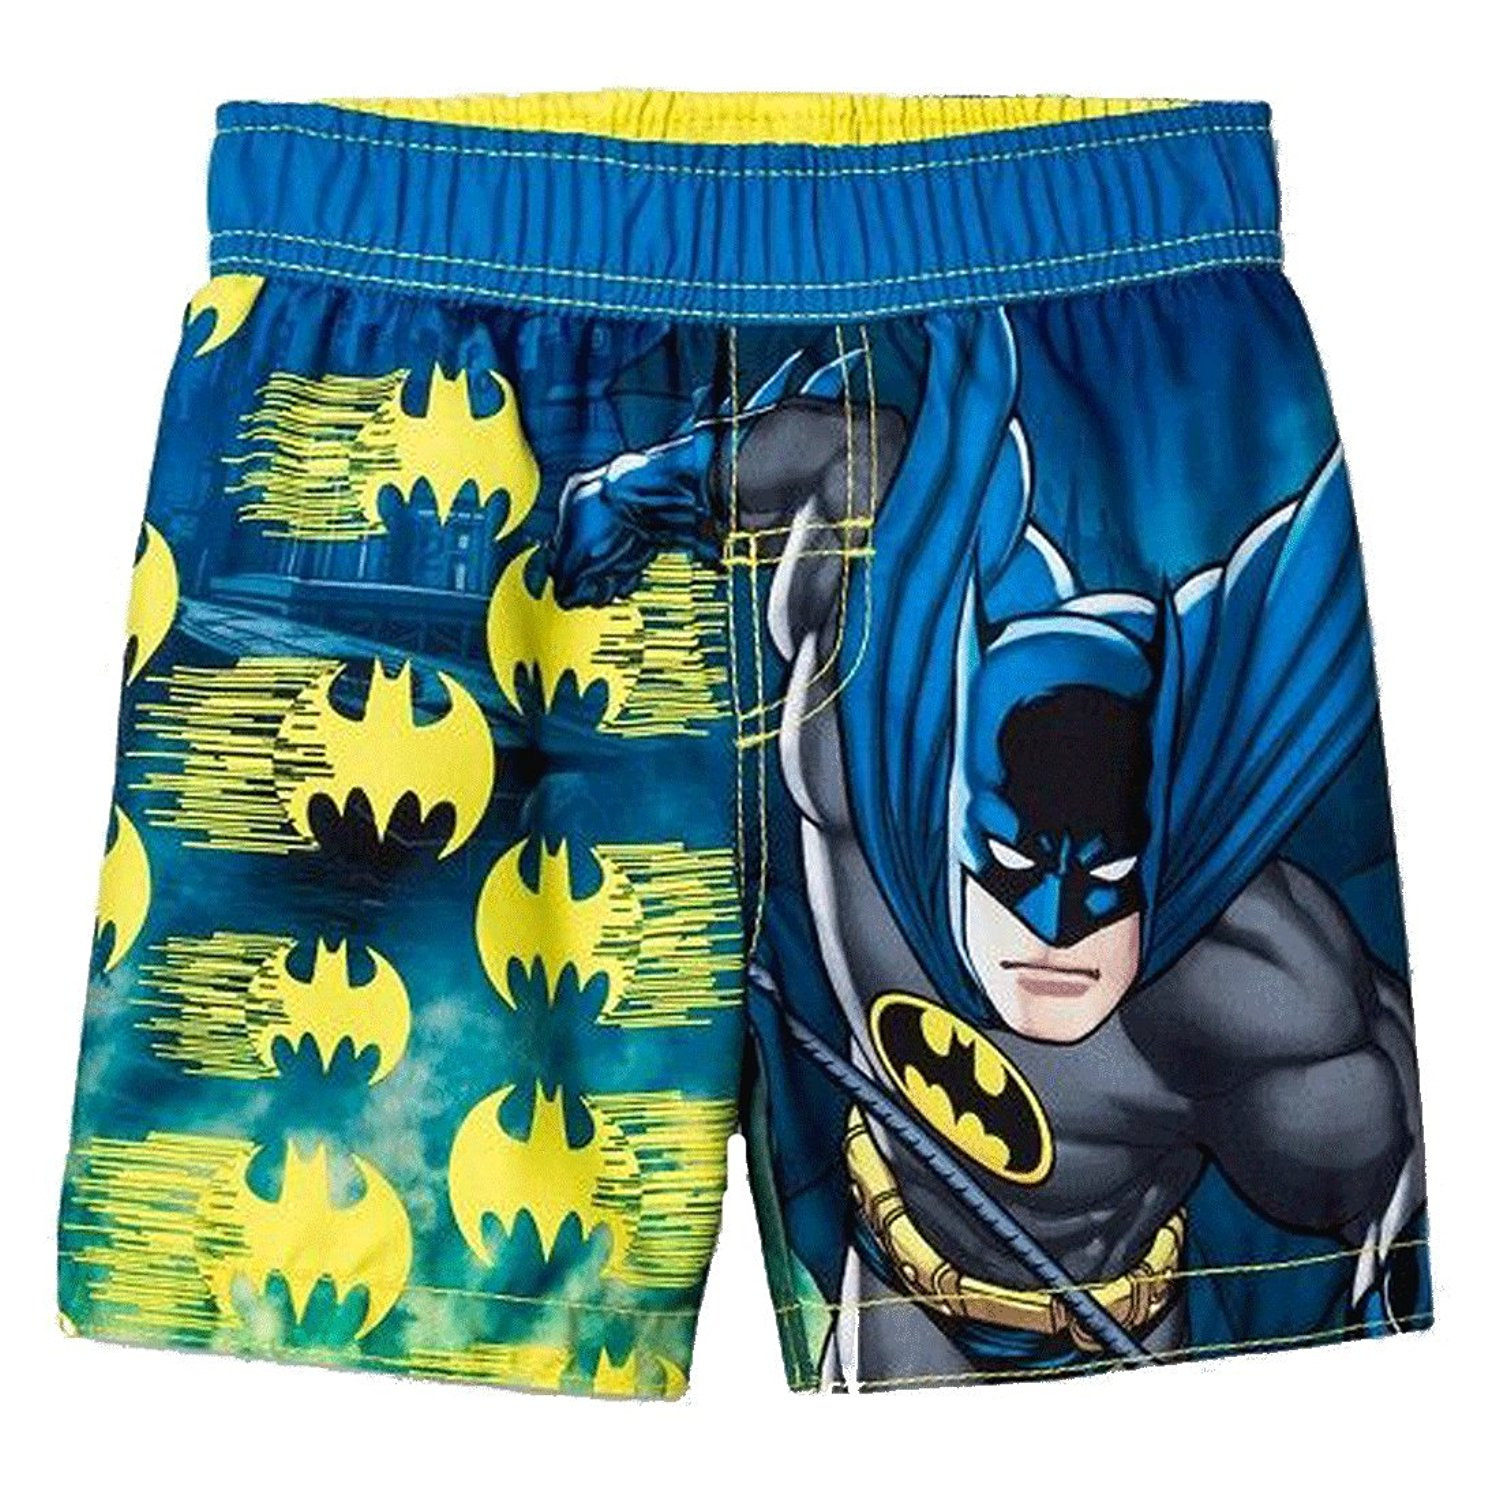 2841533c32 Cheap Batman Trunks, find Batman Trunks deals on line at Alibaba.com